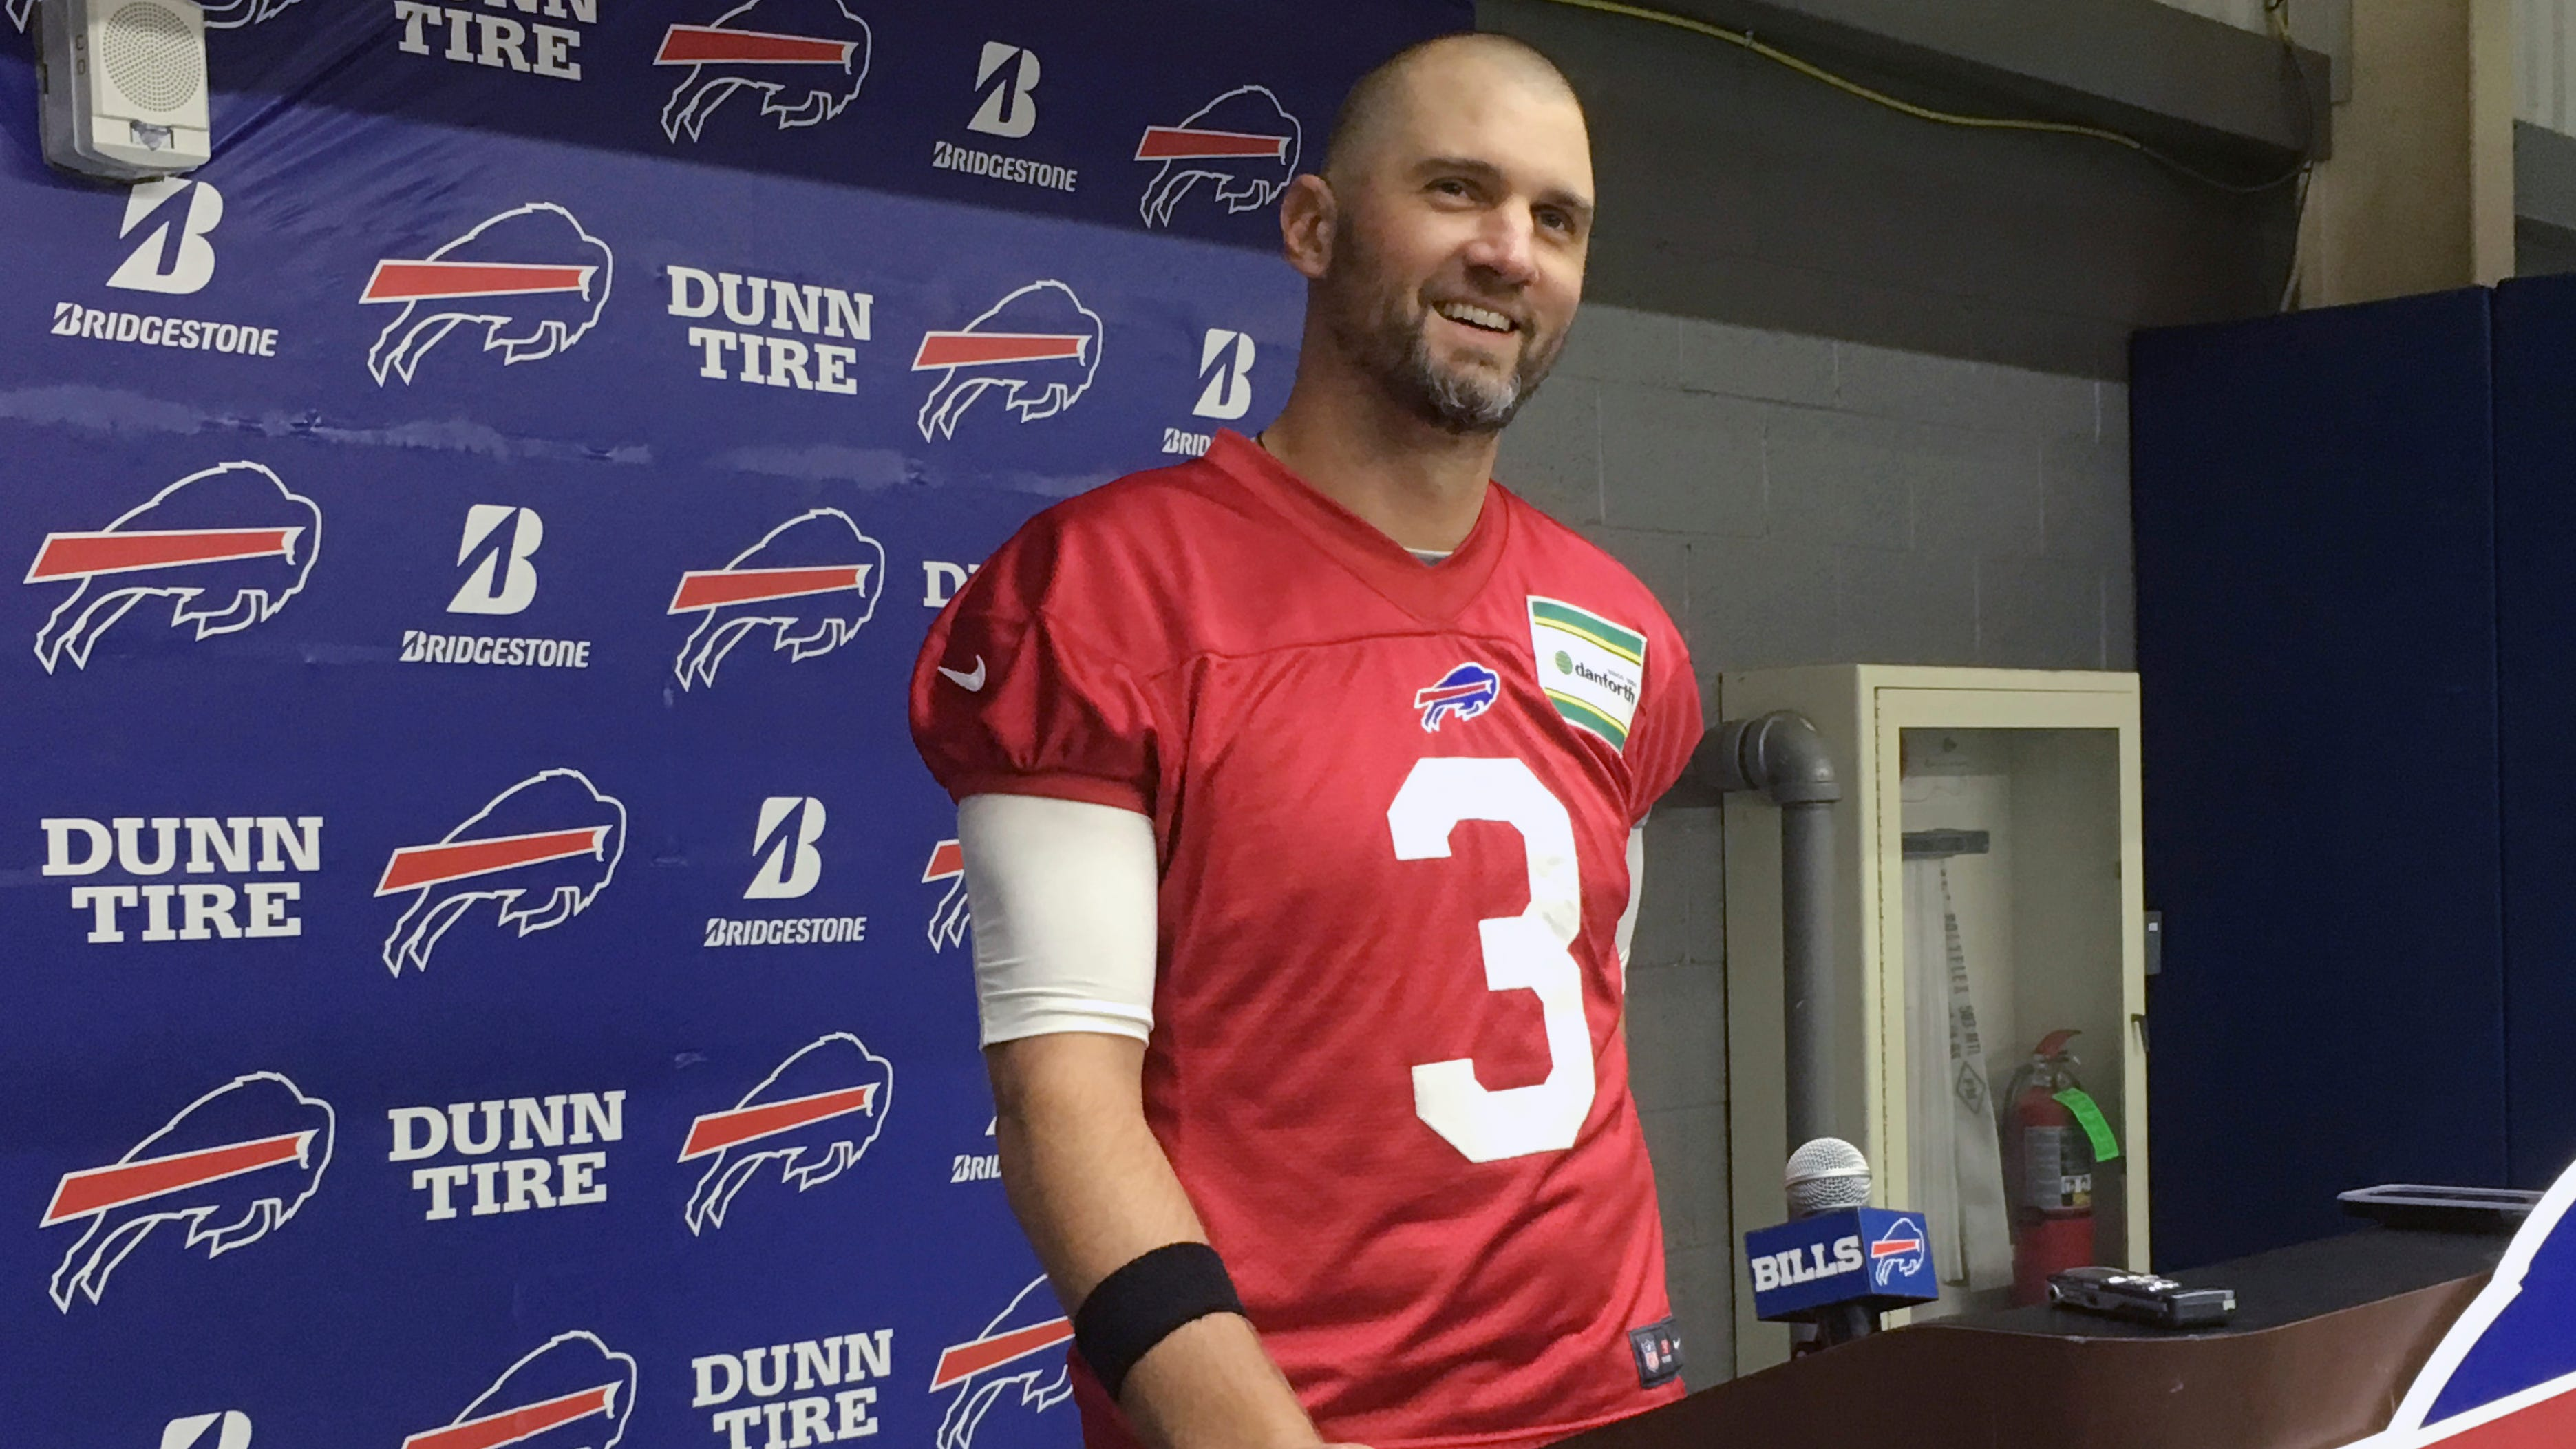 Phew, that was close! Buffalo Bills pick Anderson over Peterman to start at quarterback